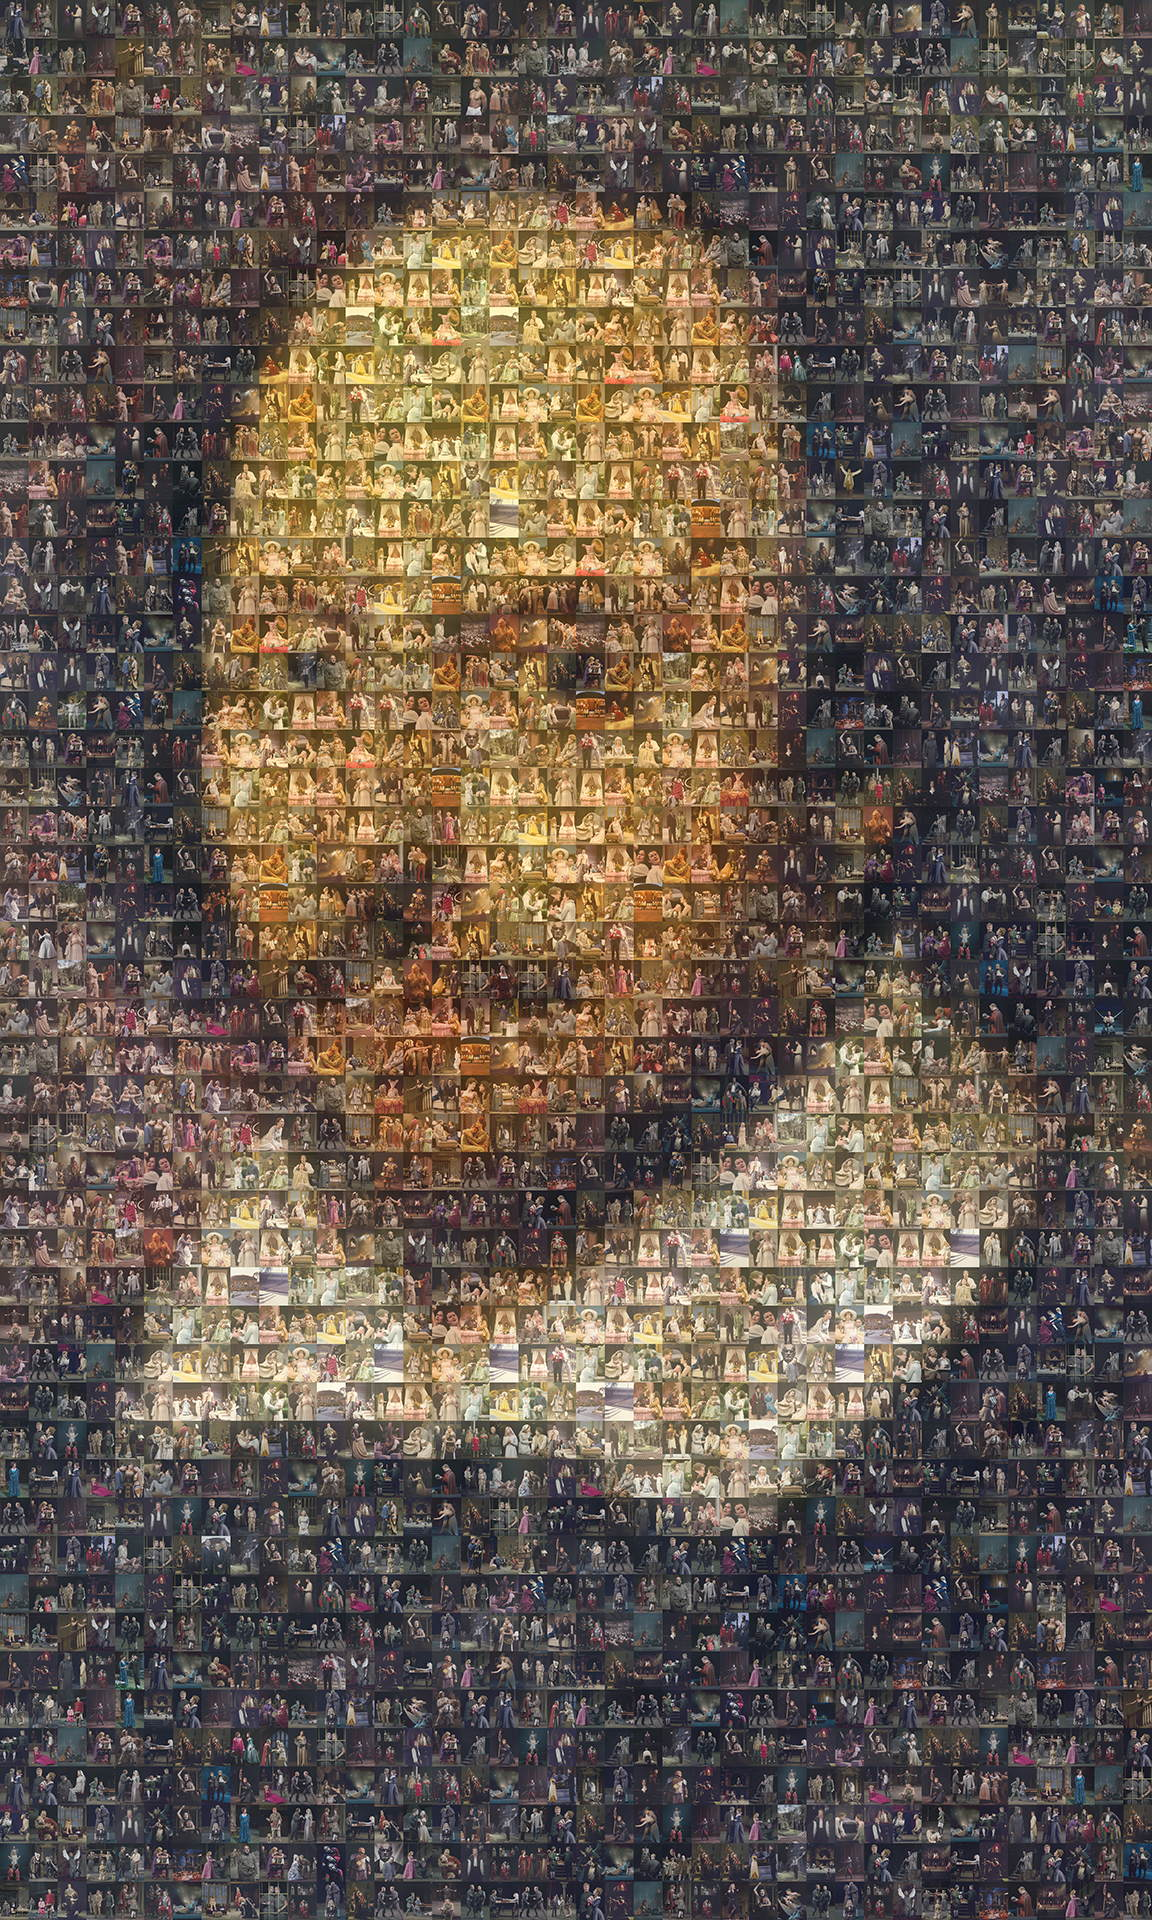 photo mosaic created using 340 photos taken during the different Shakespeare's plays to be used a playbill cover